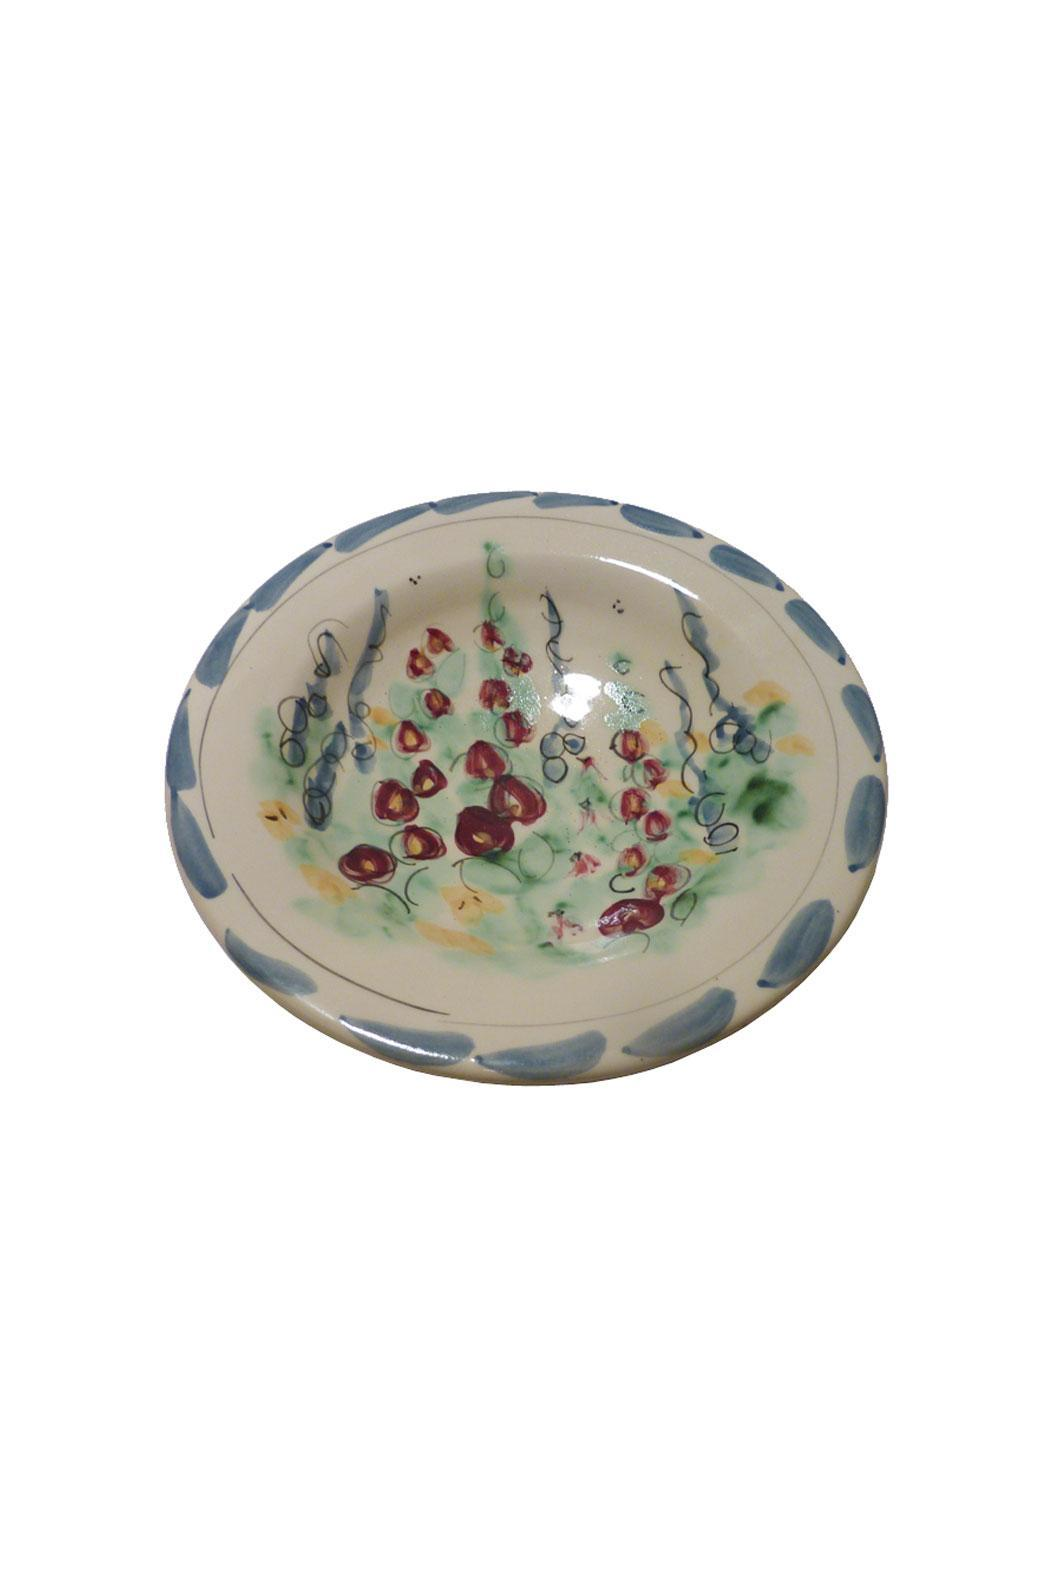 Jan Hoyman Studio Handmade Pottery Bowl - Main Image